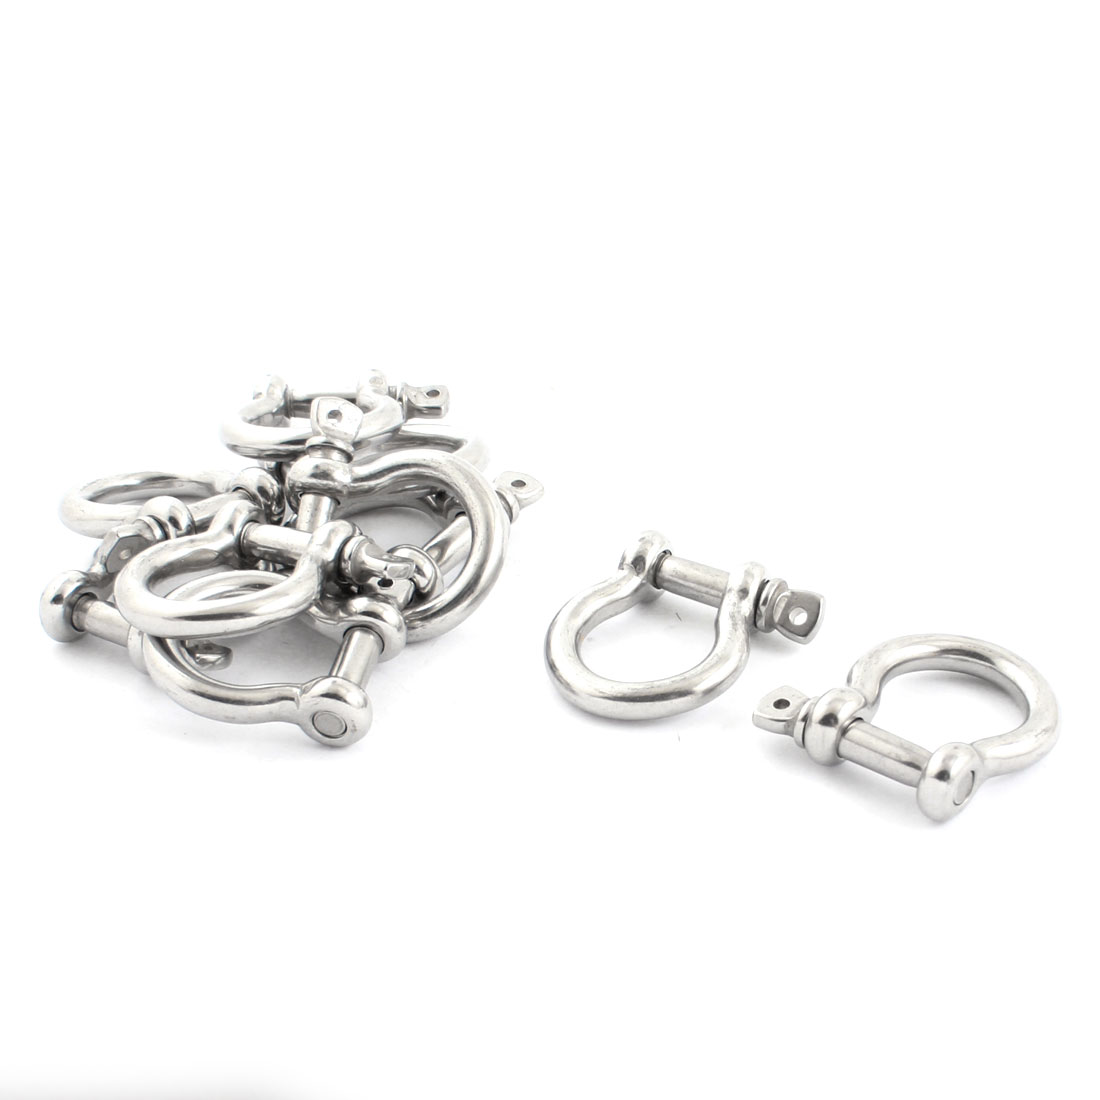 10PCS Silver Tone Stainless Steel Wire Rope Fastener Bow Shackles M6 Thread